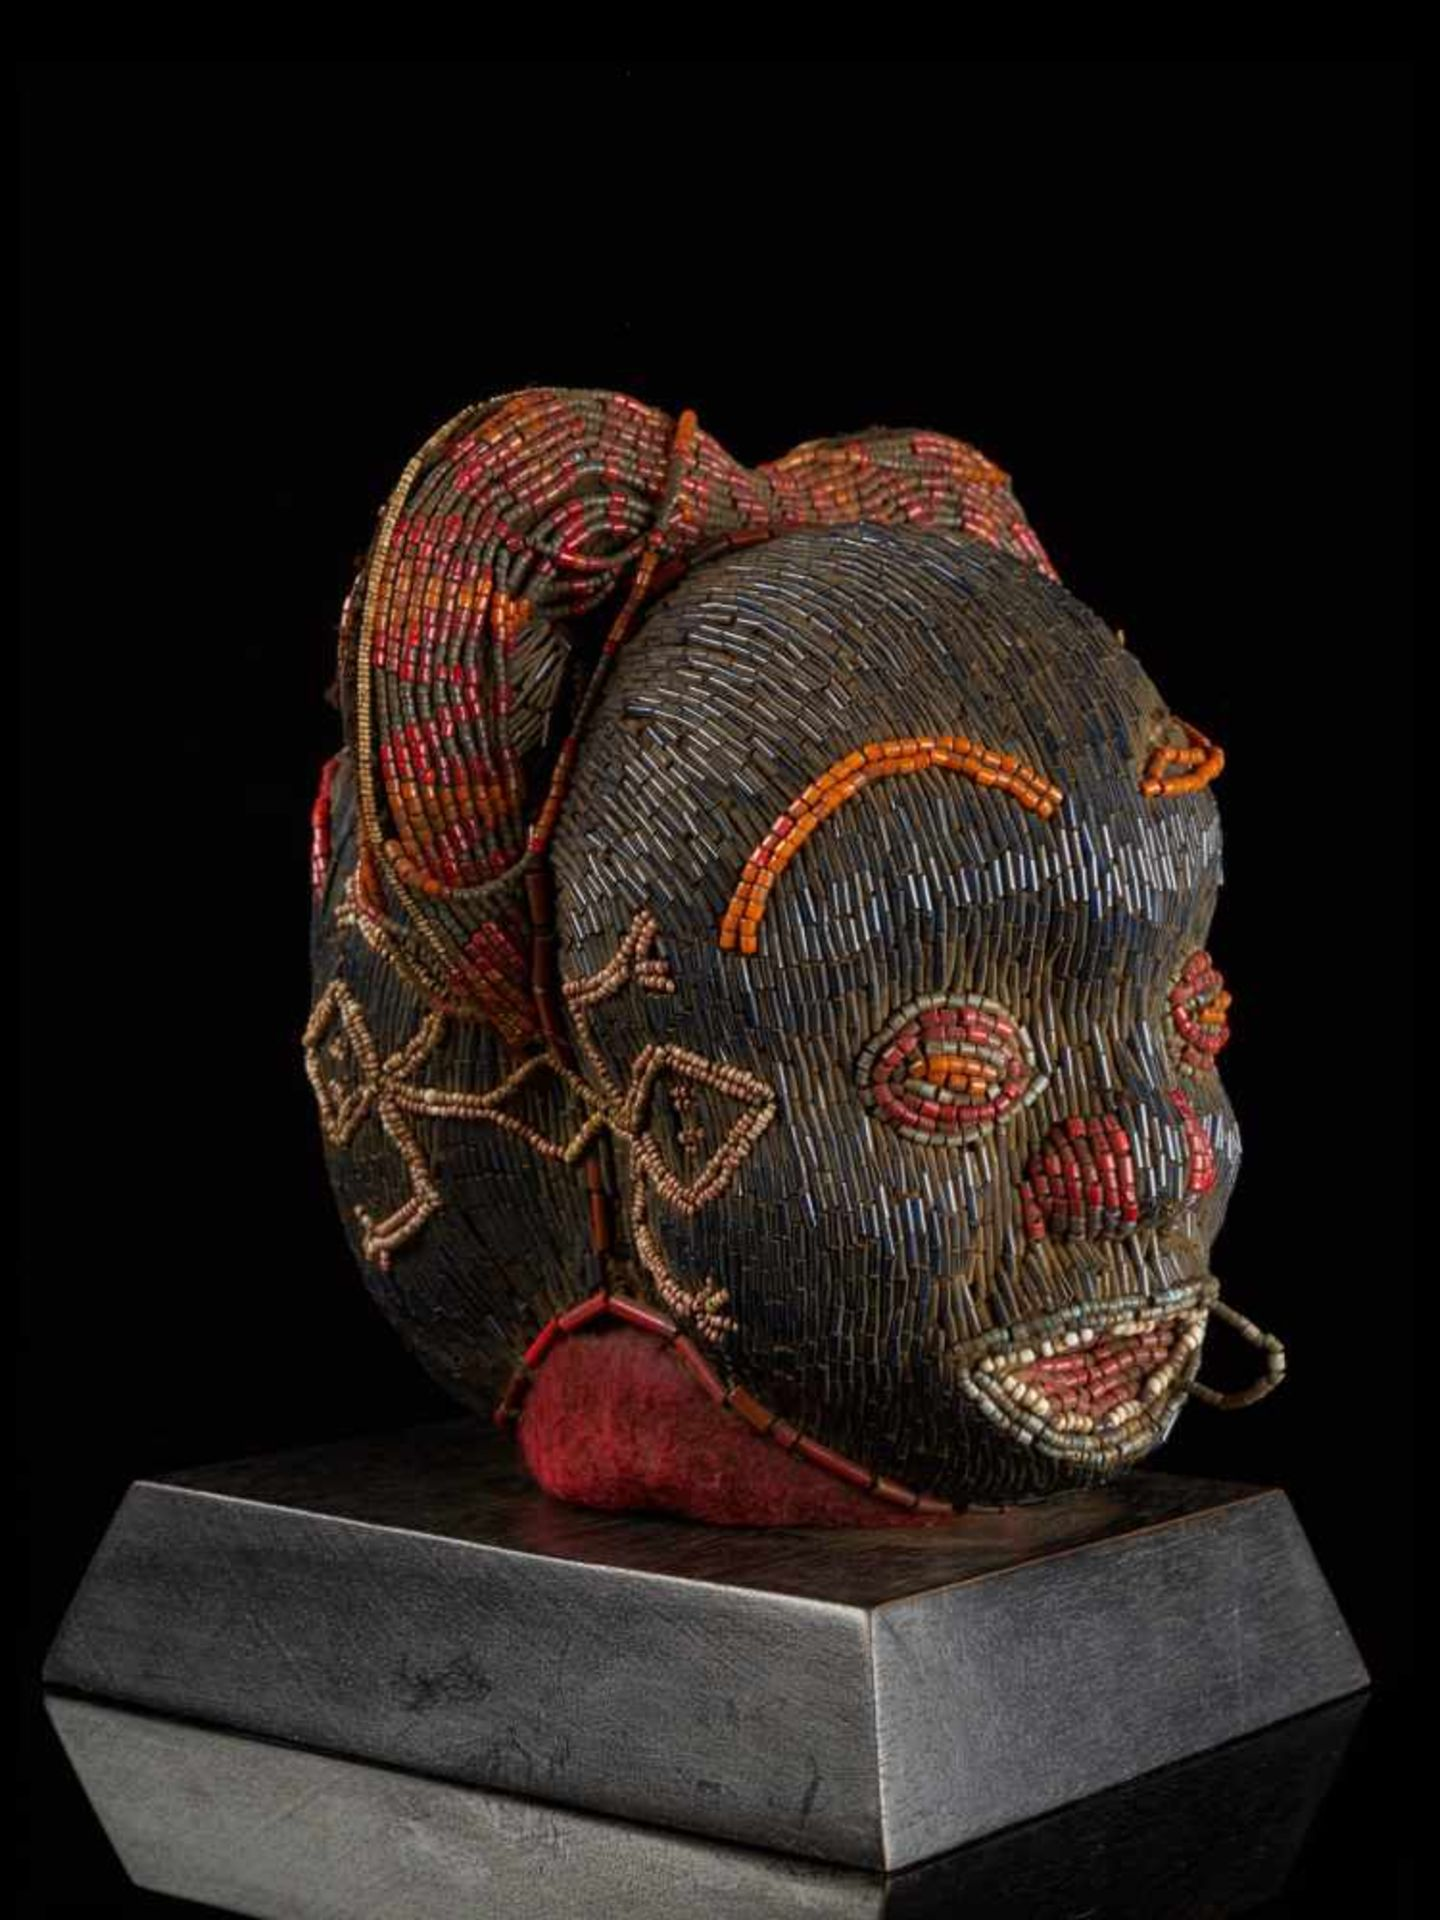 Beaded Janus Head Sculpture With Headdress - Tribal ArtThis beautiful two-faced head sculpture is